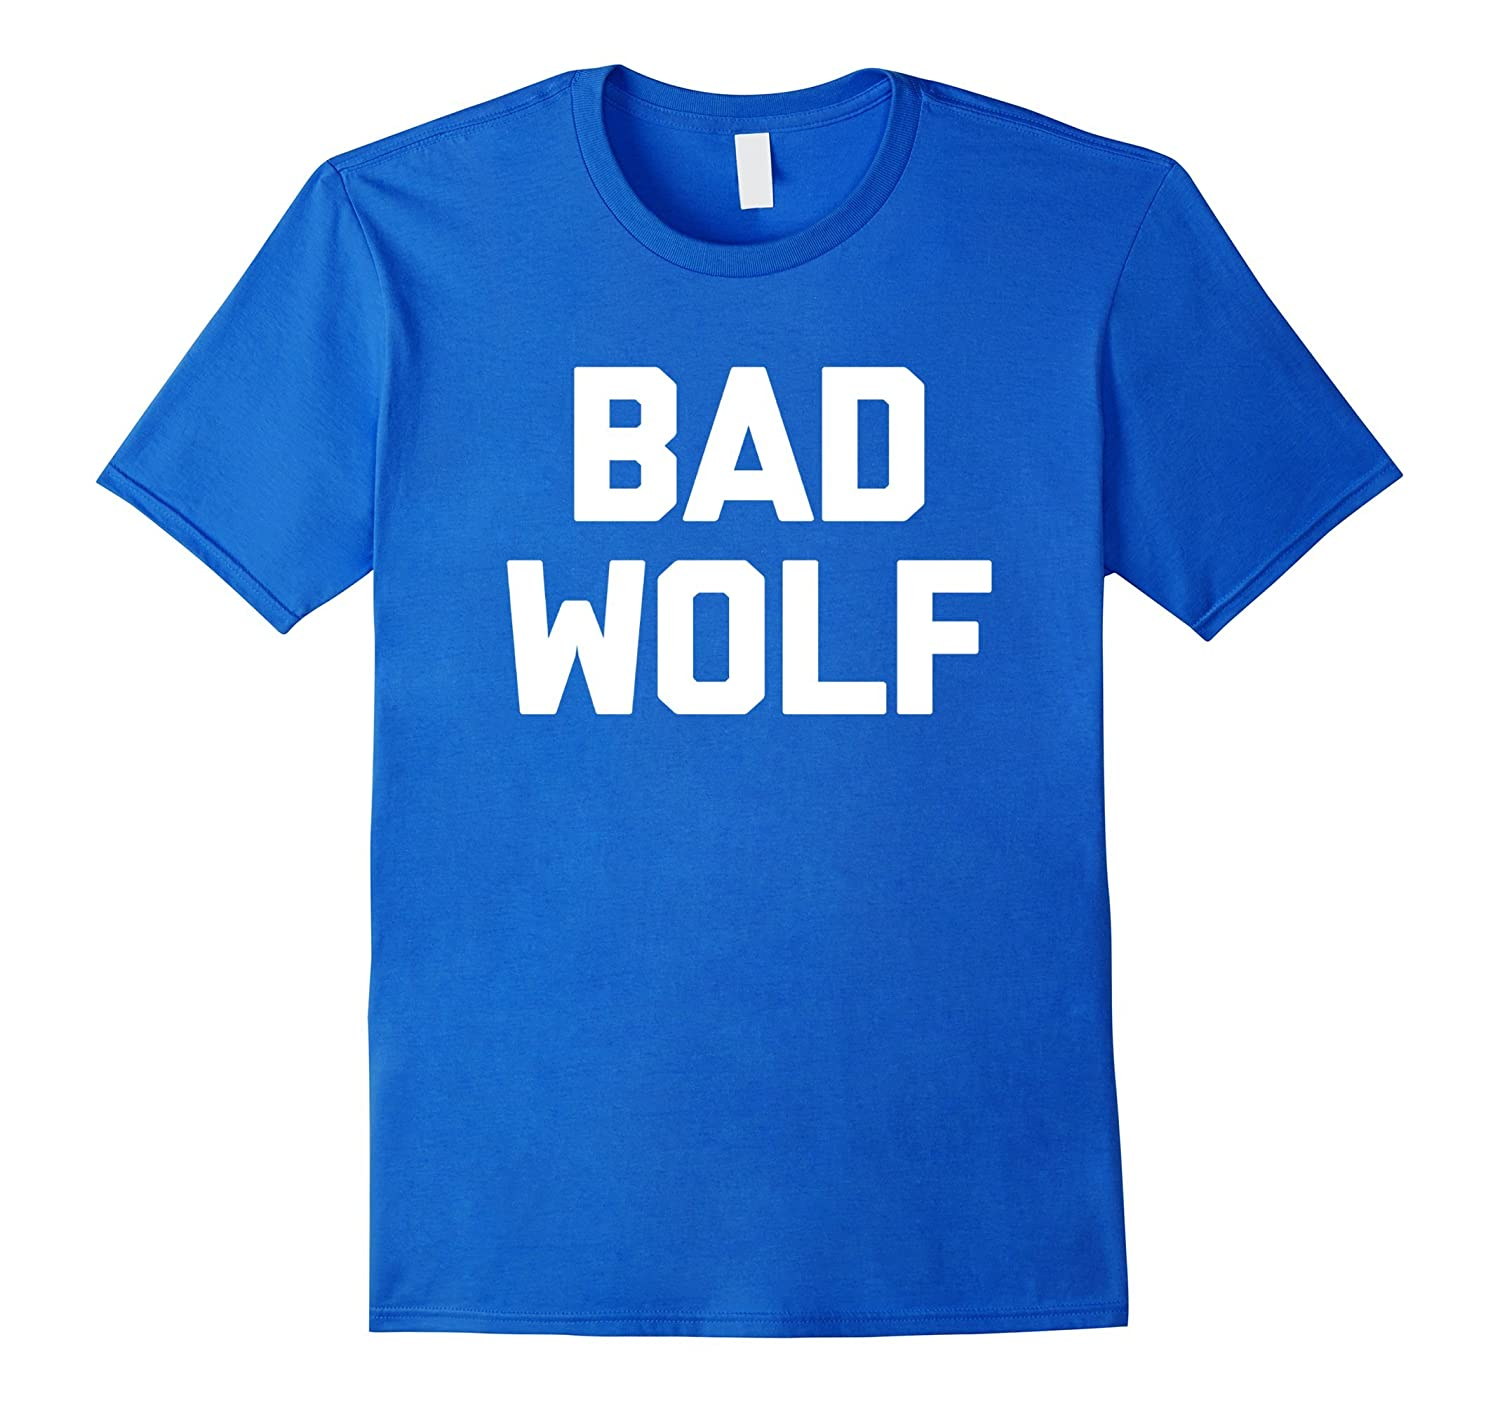 Bad Wolf T-Shirt funny saying sarcastic novelty humor cool-FL